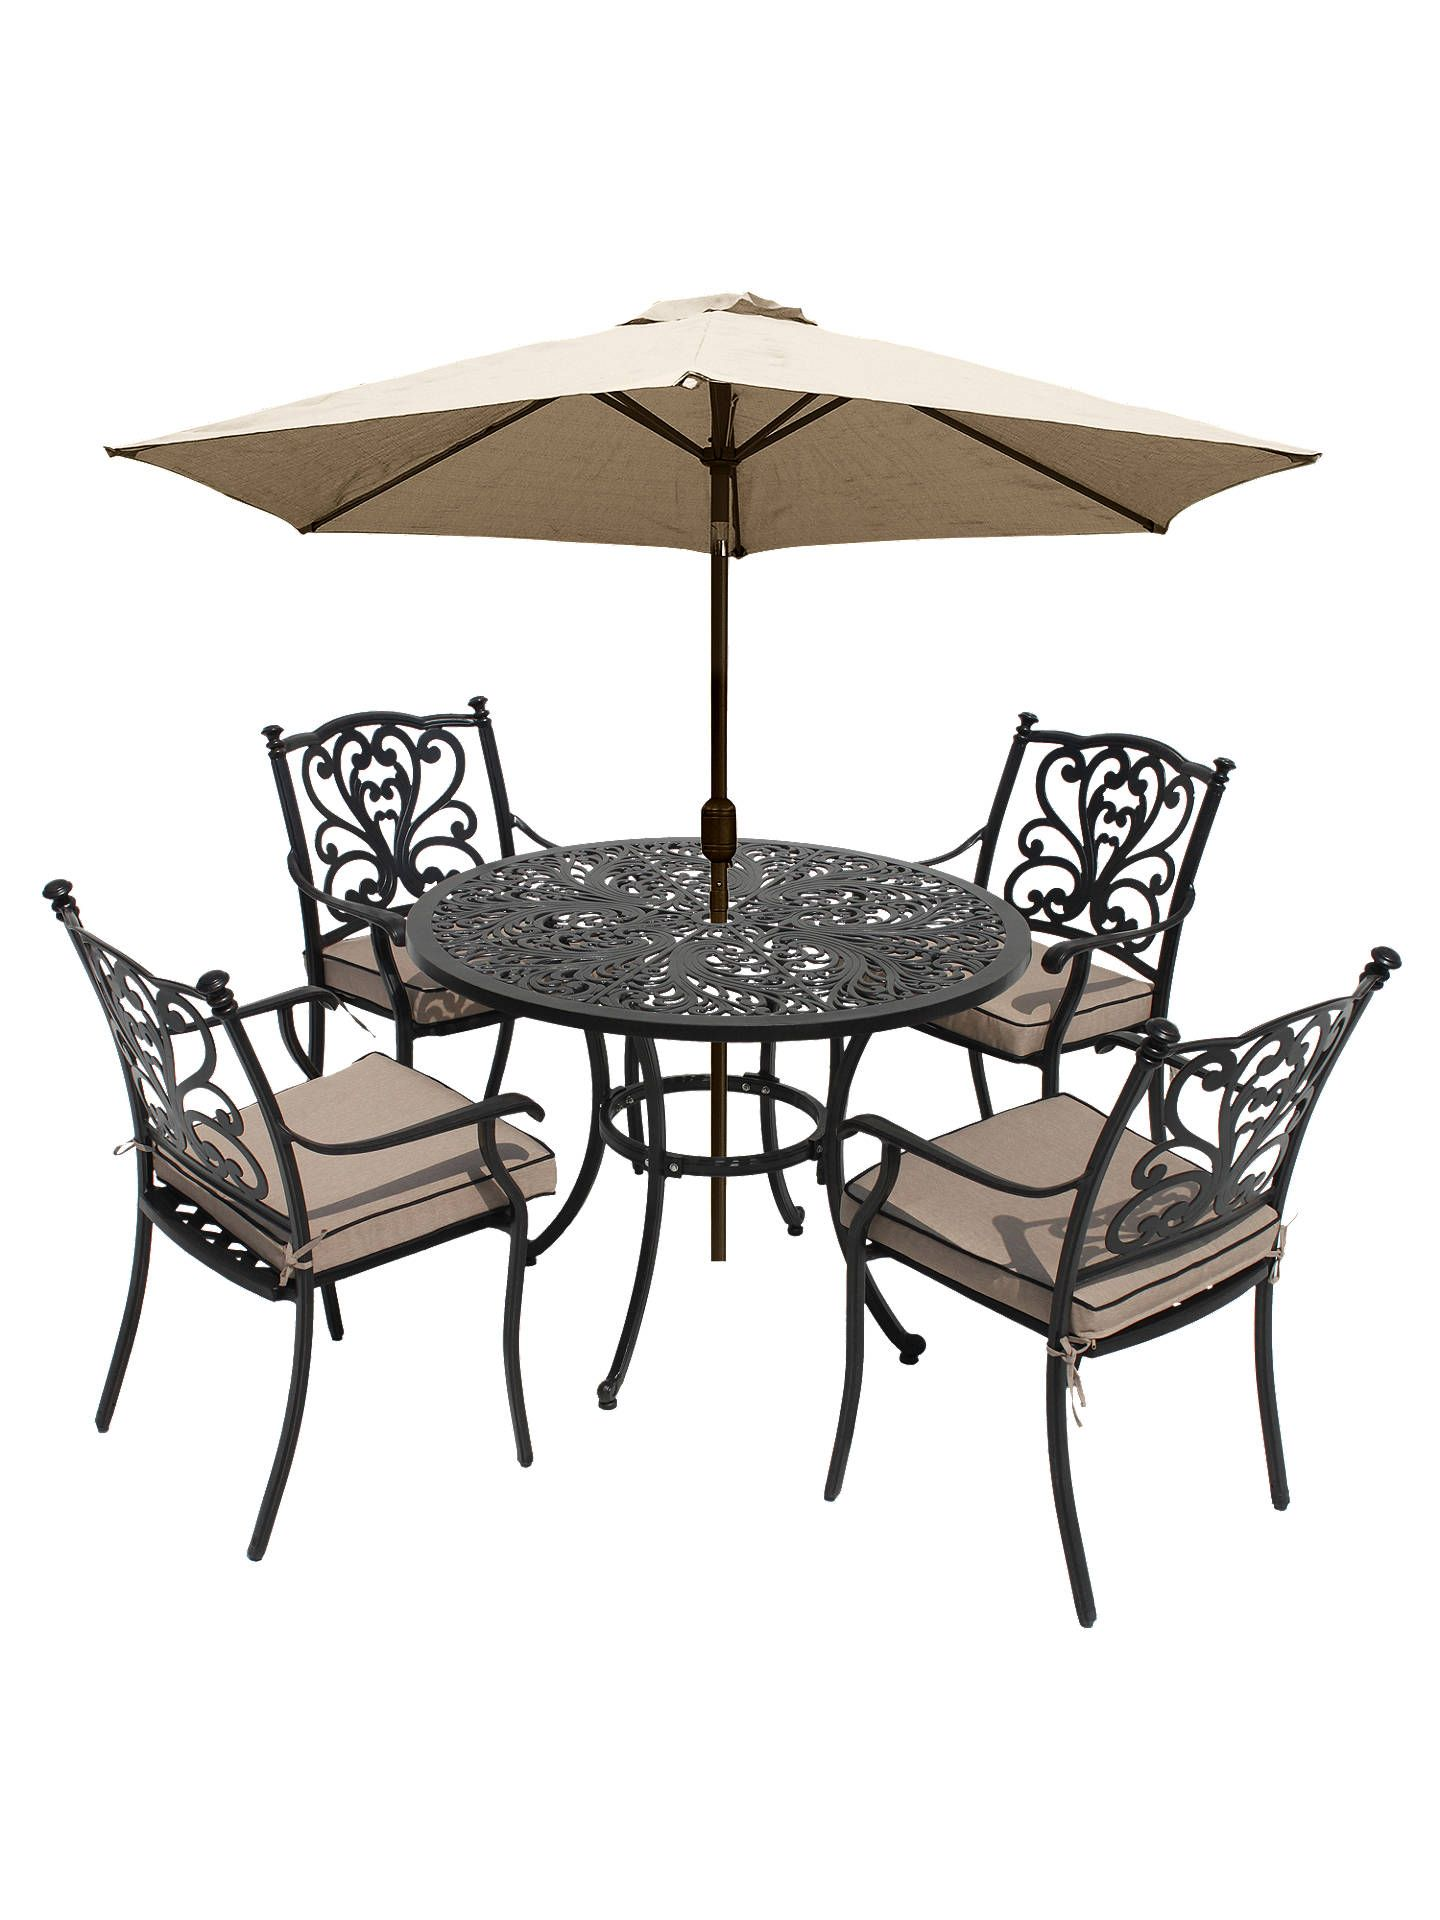 Lg Outdoor Devon 4 Seater Garden Dining Table And Chairs Set With Parasol Bronze In 2020 Dining Table Chairs Table And Chair Sets Table And Chairs